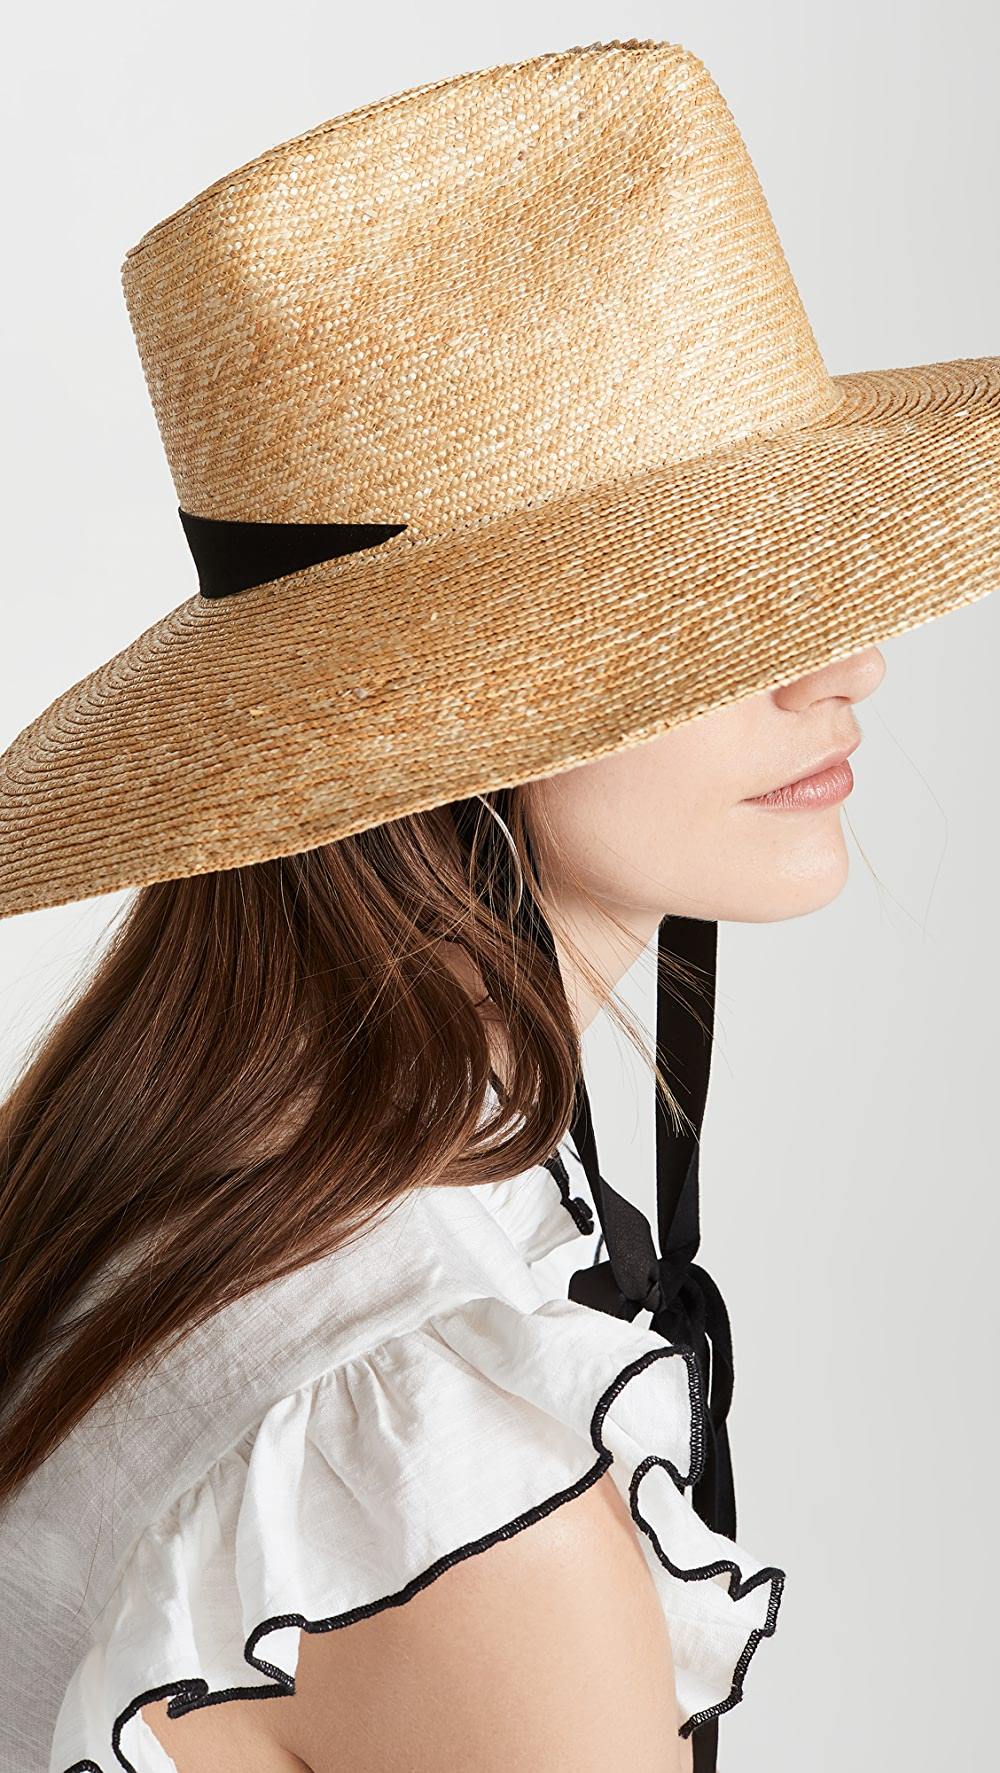 Bright Janessa Leone - Serena Hat Providing Amenities For The People; Making Life Easier For The Population